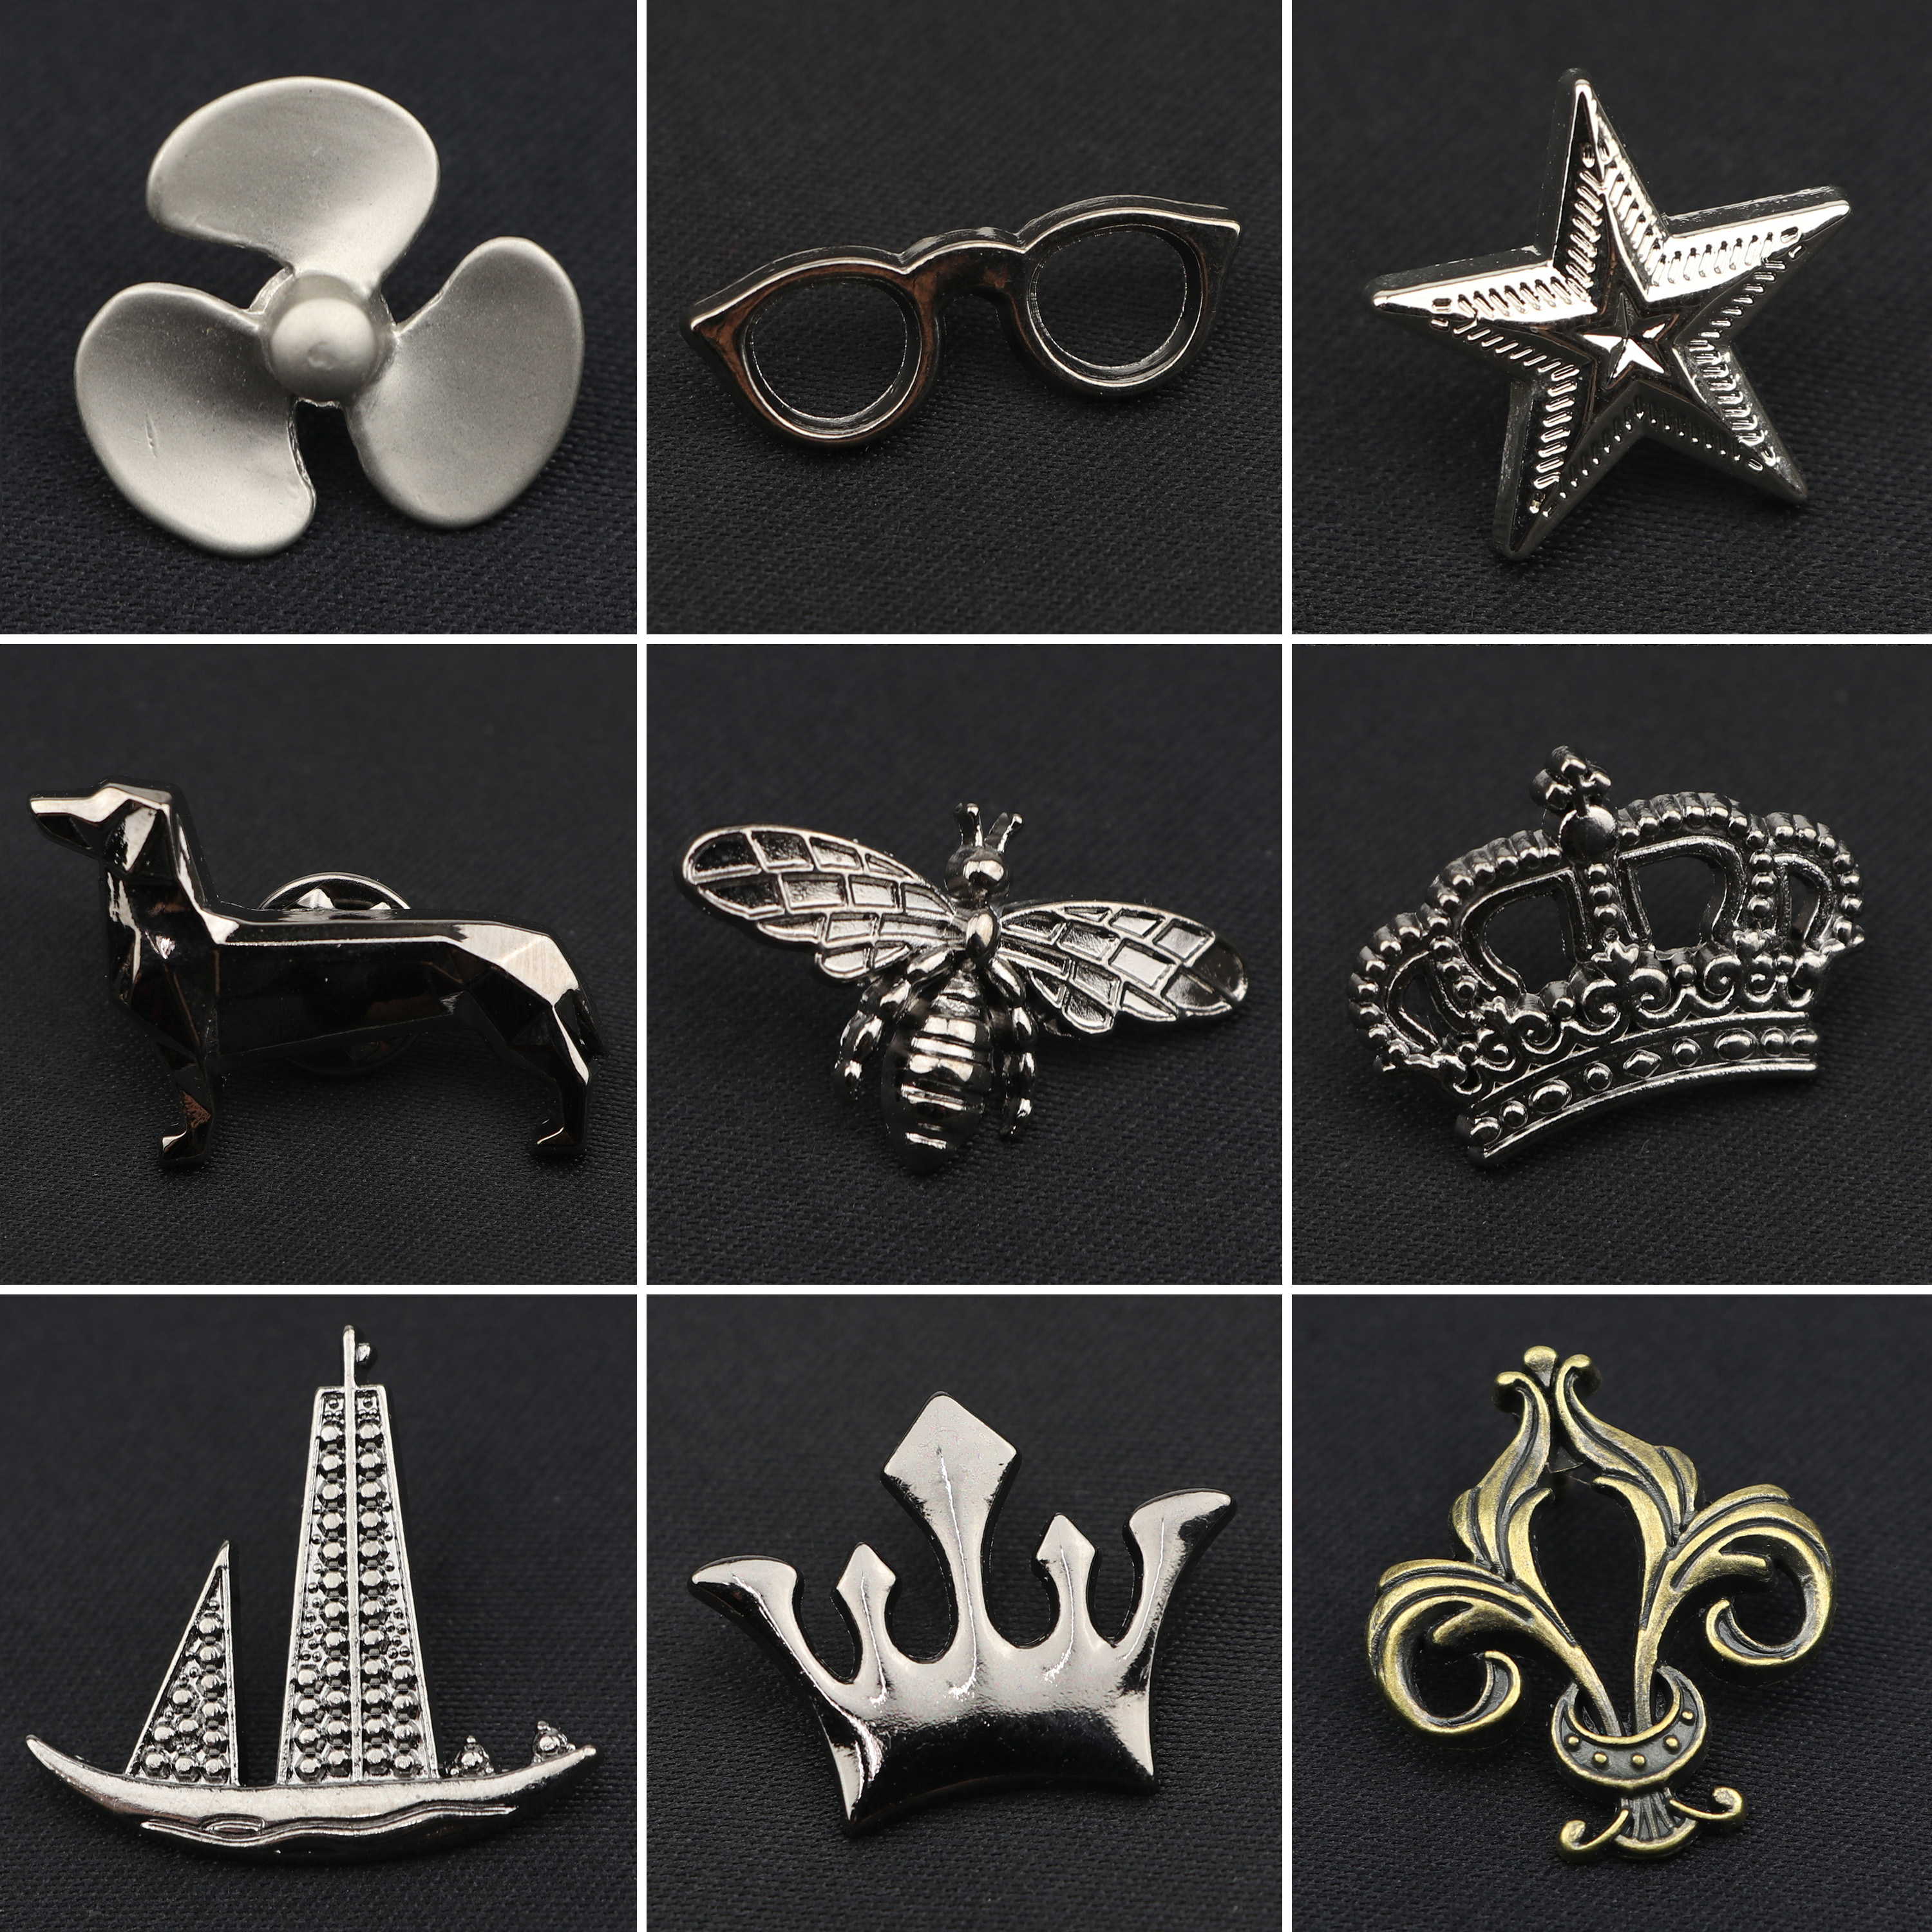 Fashion Men's Mini Brooches Chic Style Guitar Crown Boat Star Bee Advanced Lapel Pin Suit Shirt Collar Shawl Tuxedo Accessory